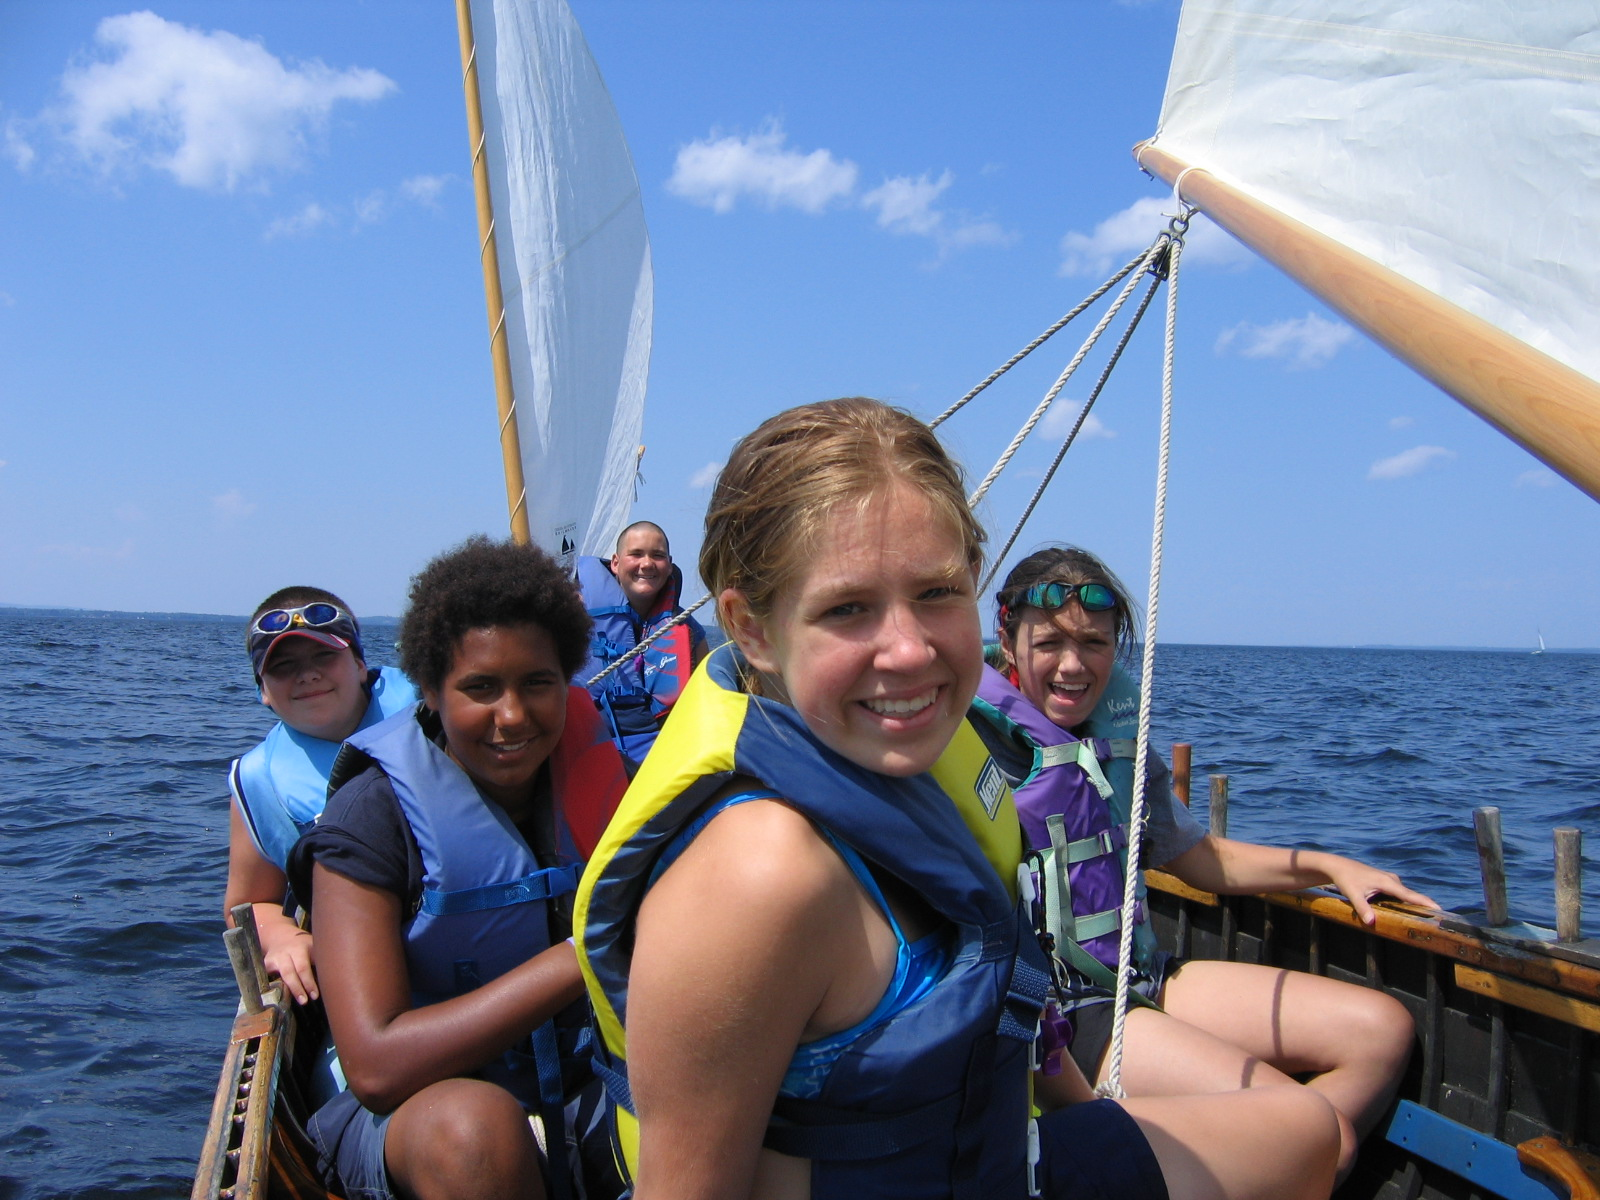 Five teens sail on Lake Champlain